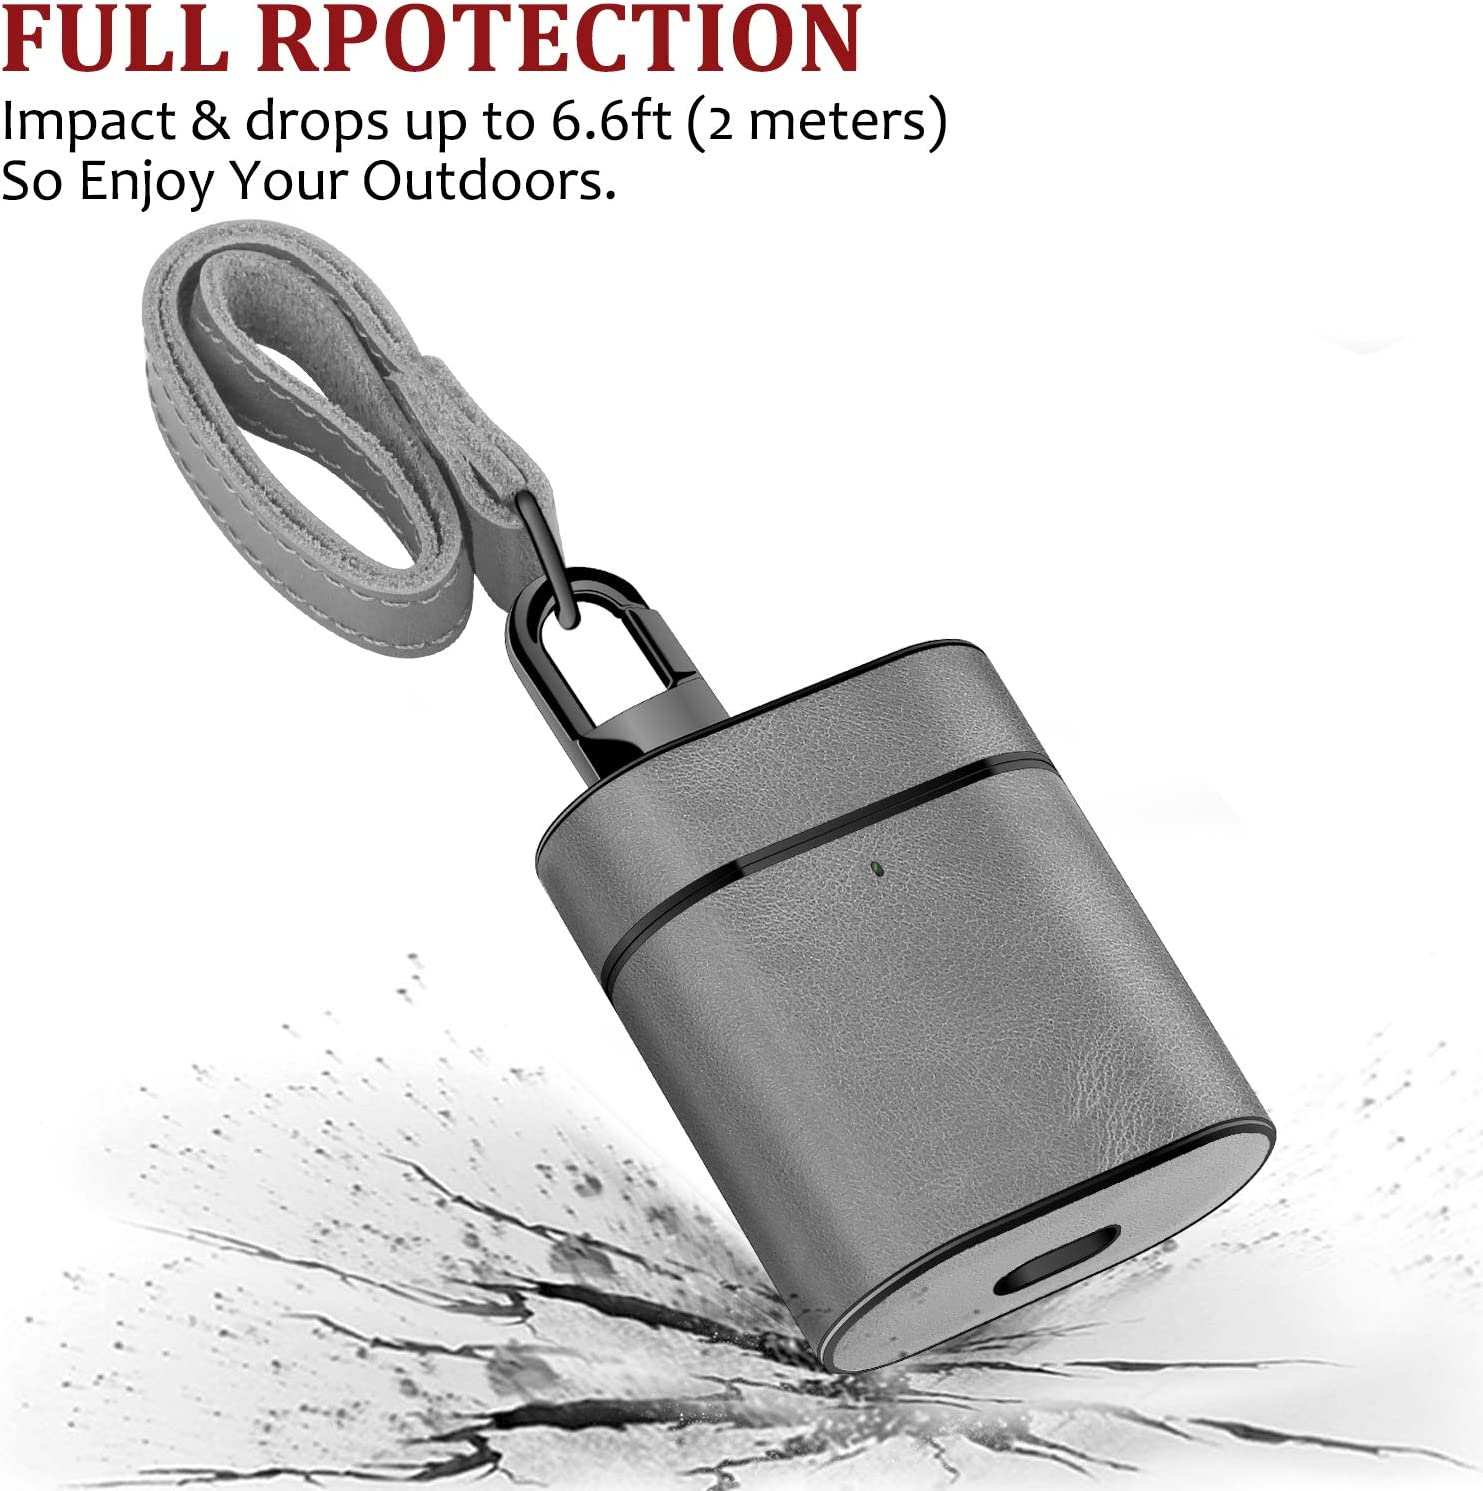 XGUO AirPods Case Genuine Leather Shockproof Skin Cover Case Portable Protective Cover for Apple AirPods 1 /& AirPods 2 Charging Case Gary